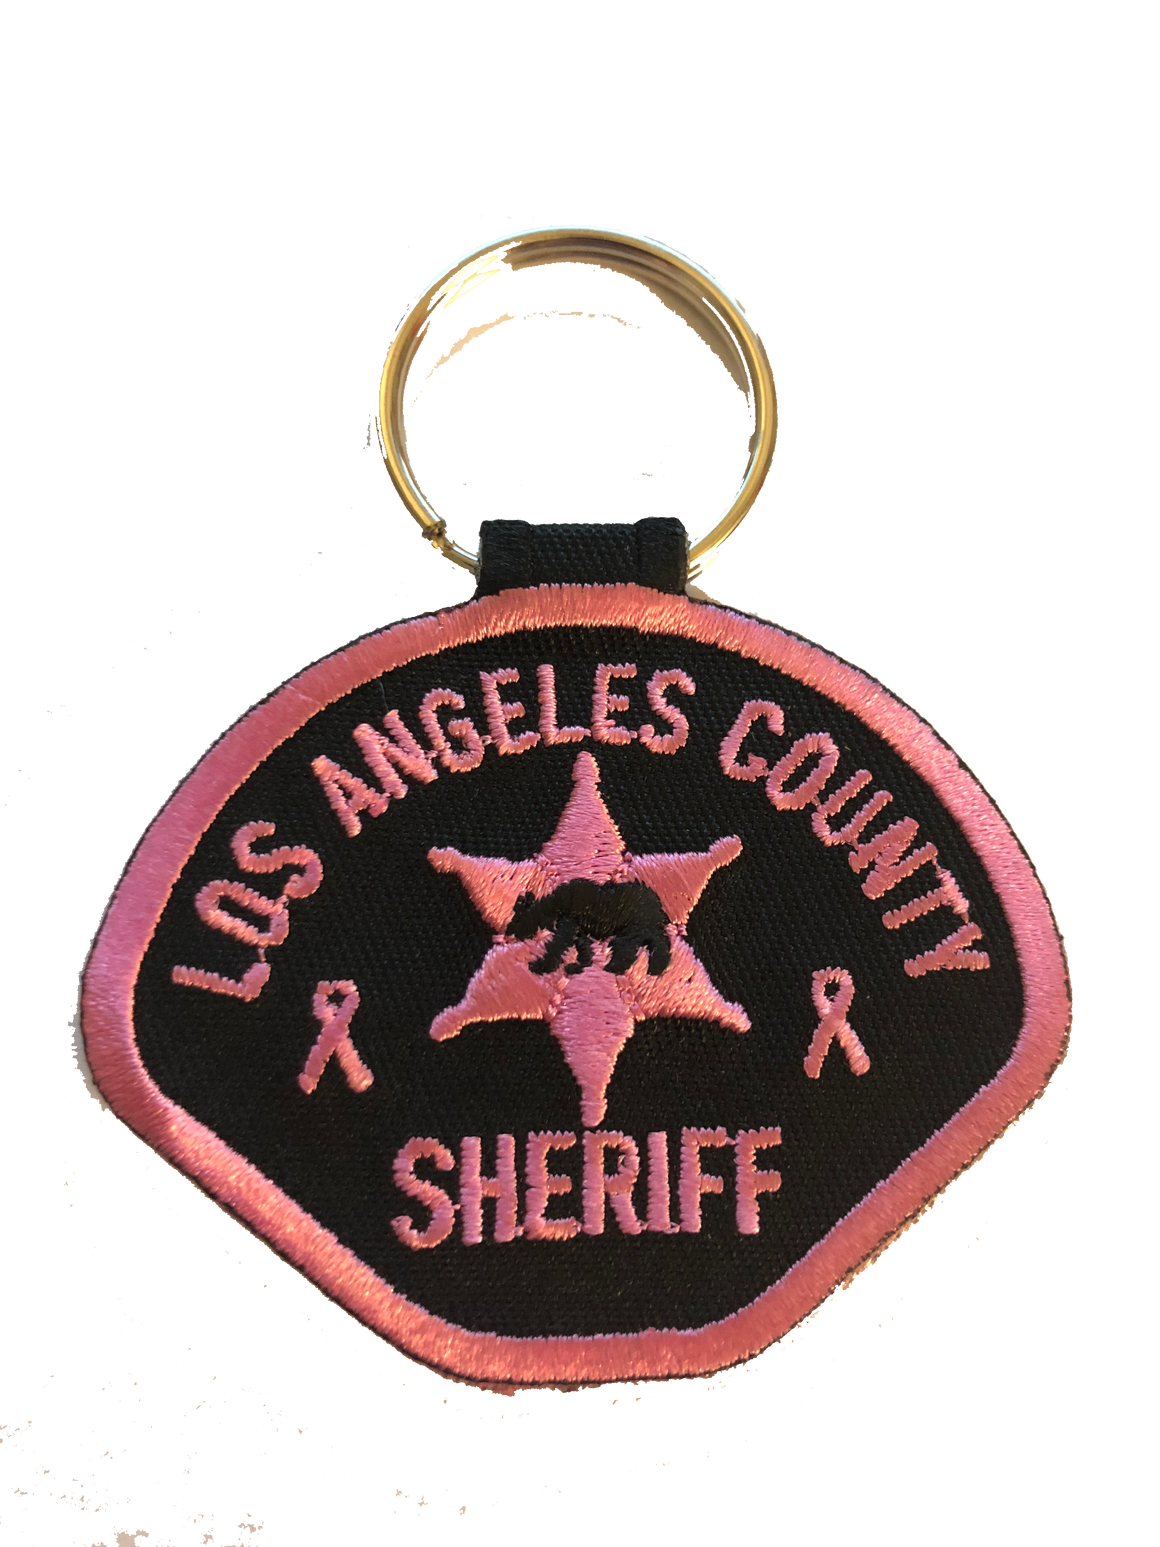 Los Angeles County Sheriff's Department Pink Patch Project Keychain #PinkPatchProject